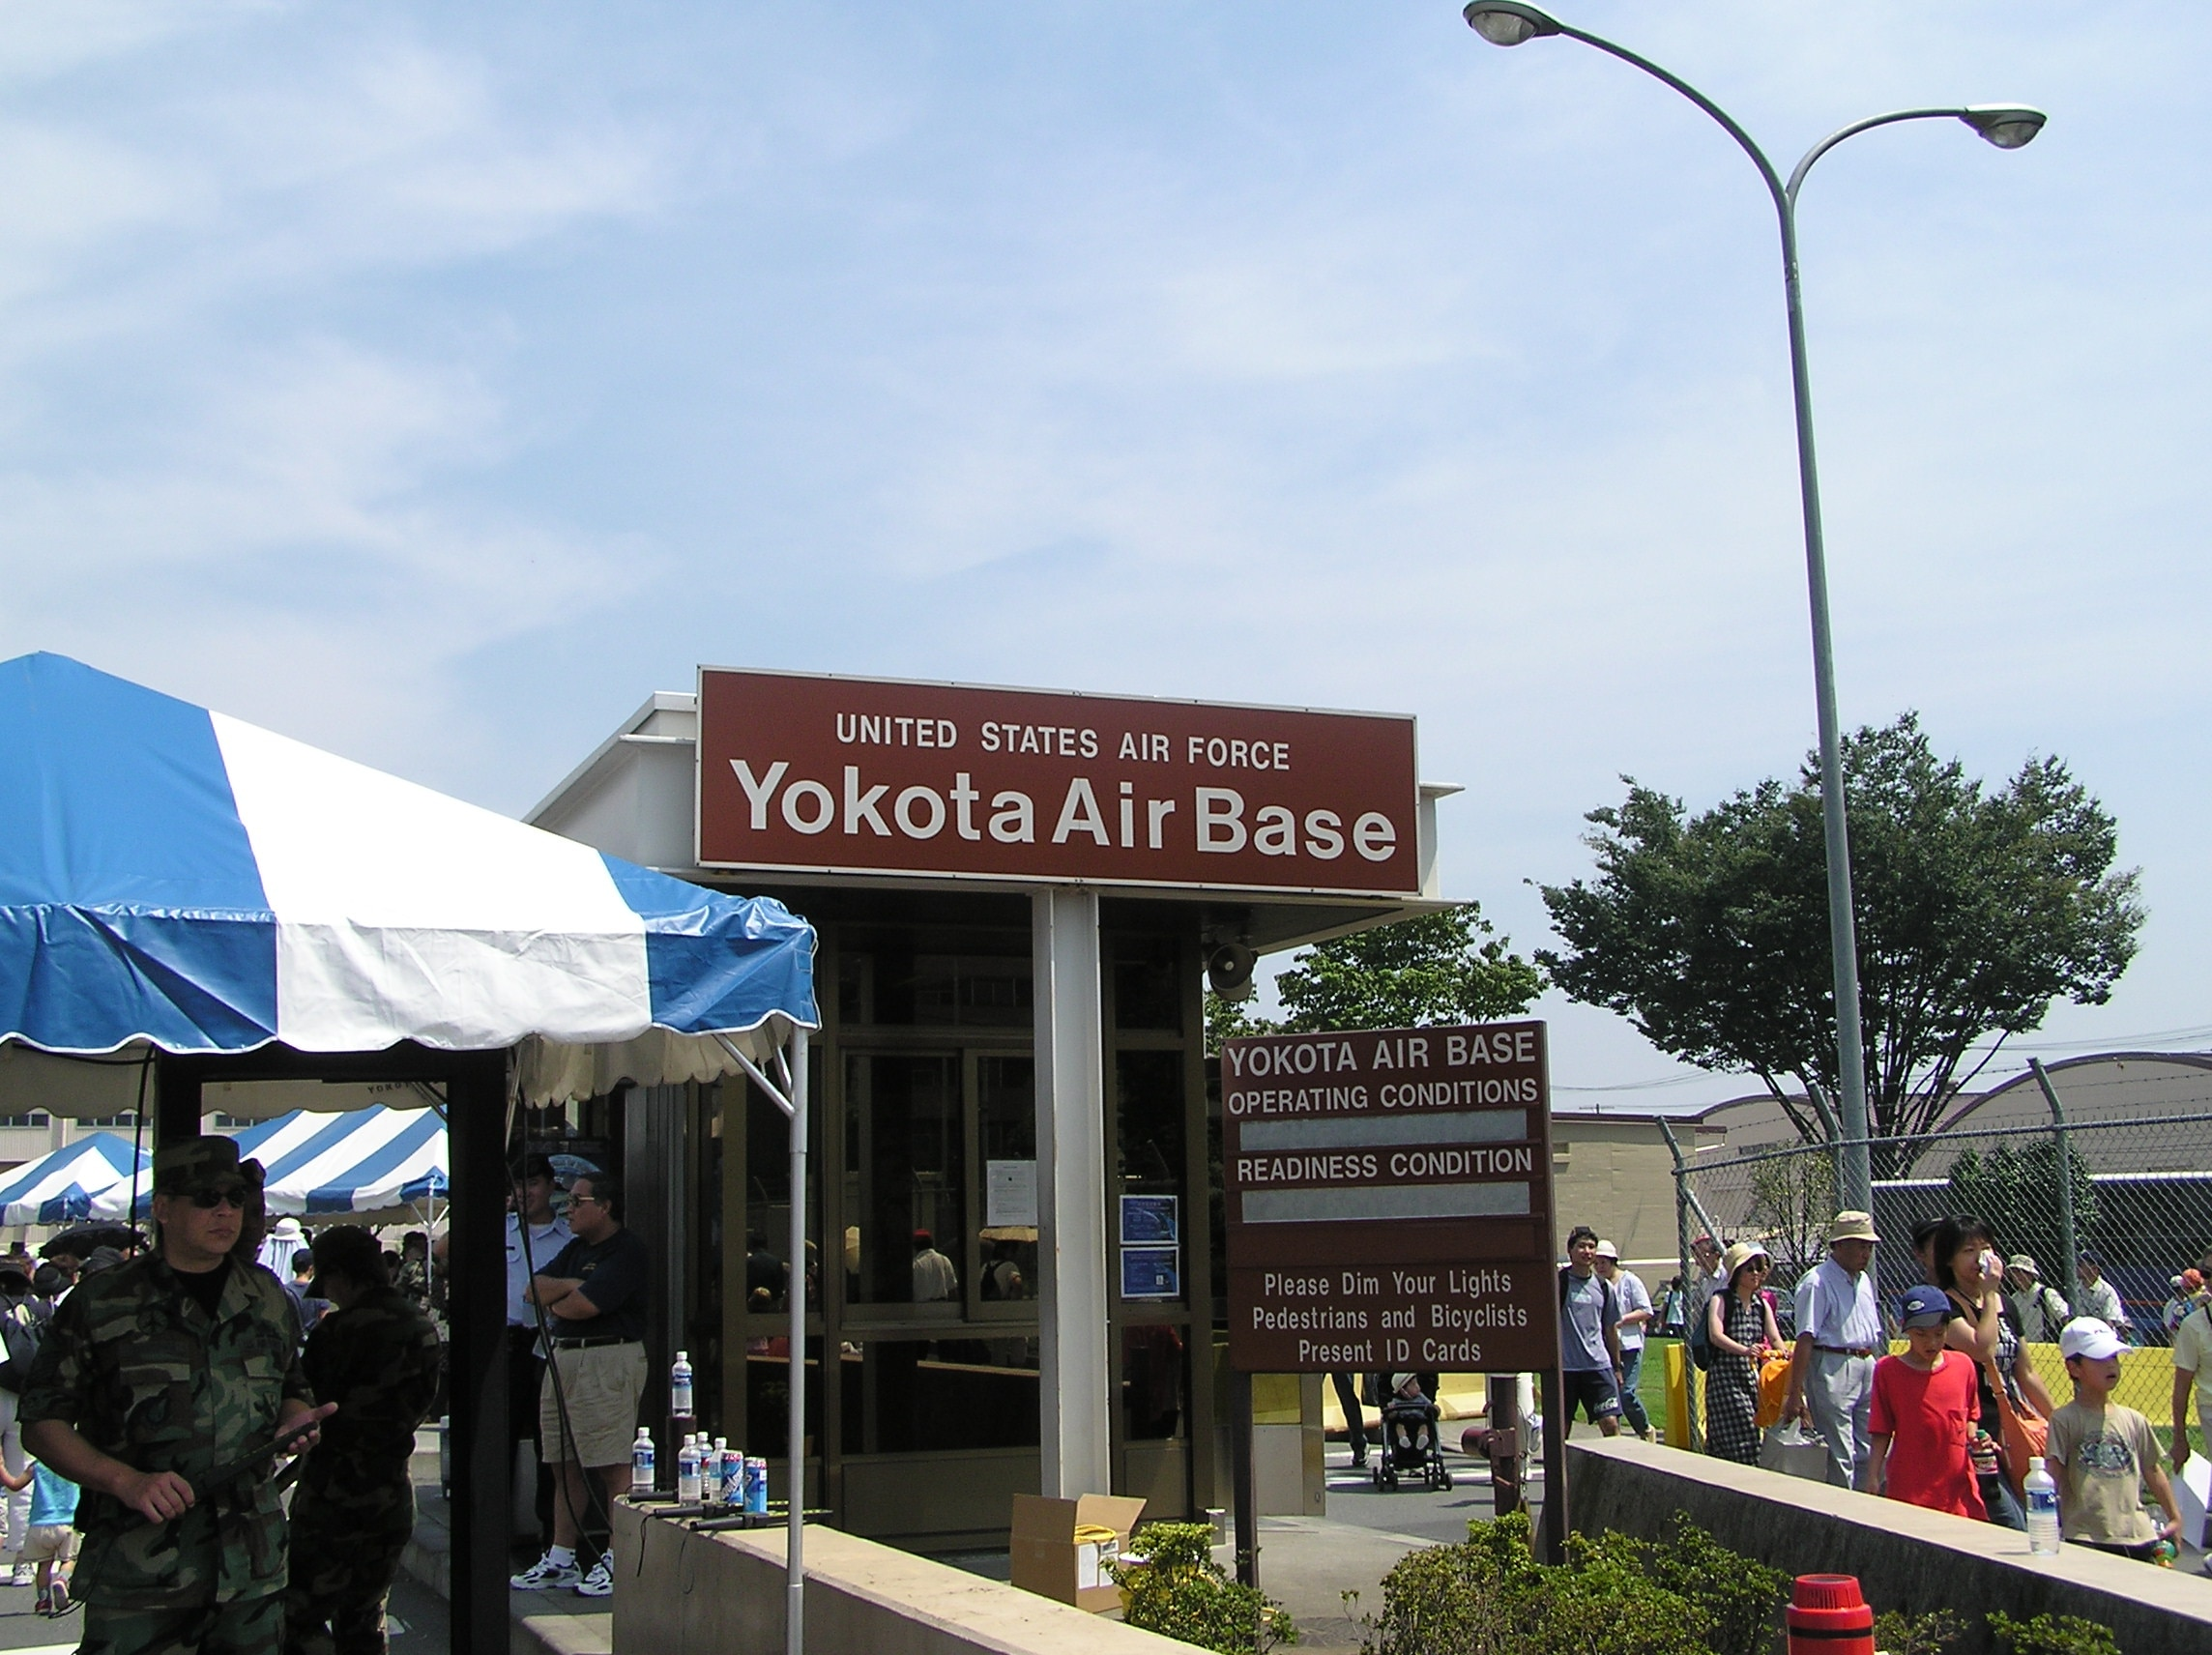 Suspicious Package At Yokota Air Base Uncle Sams Misguided Children - Us Air Force Bases In Japan Map